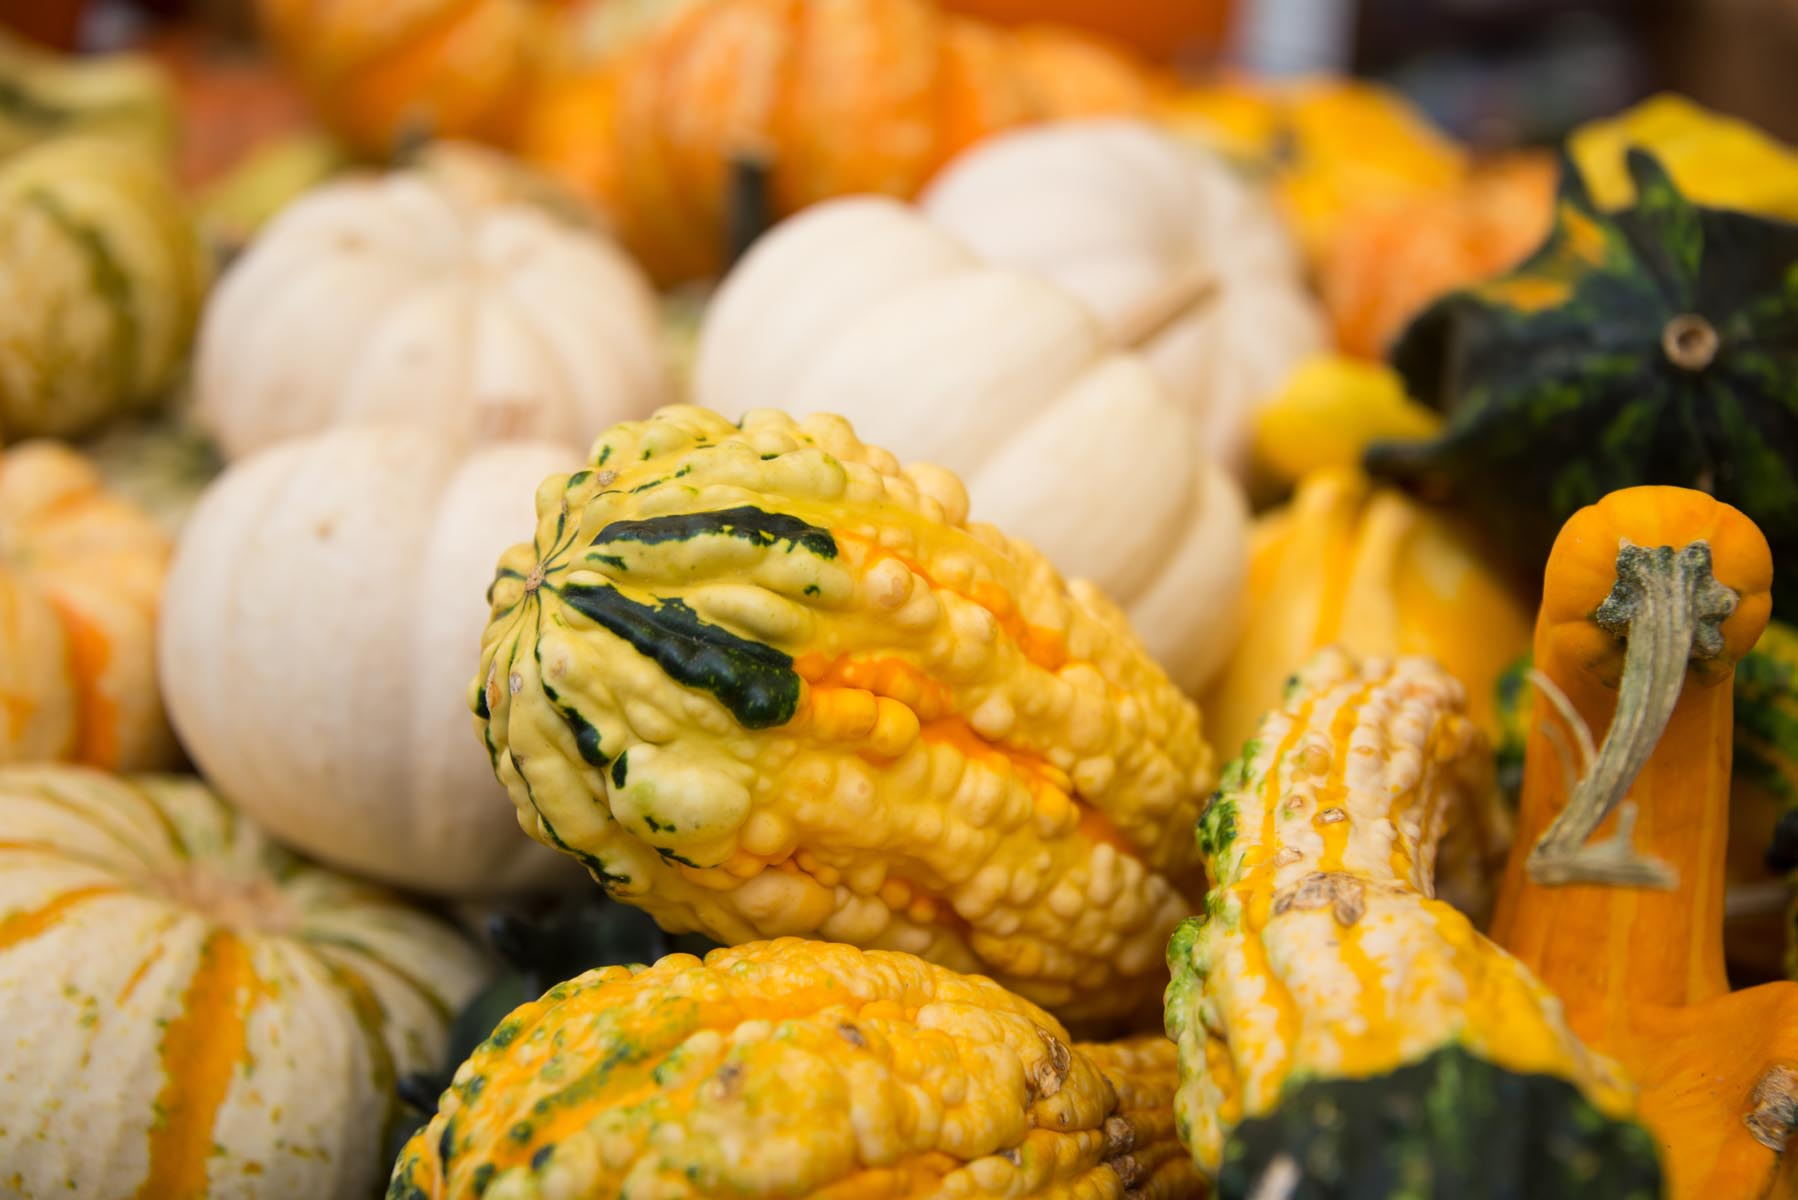 Gourds at The Western North Carolina Farmers Market